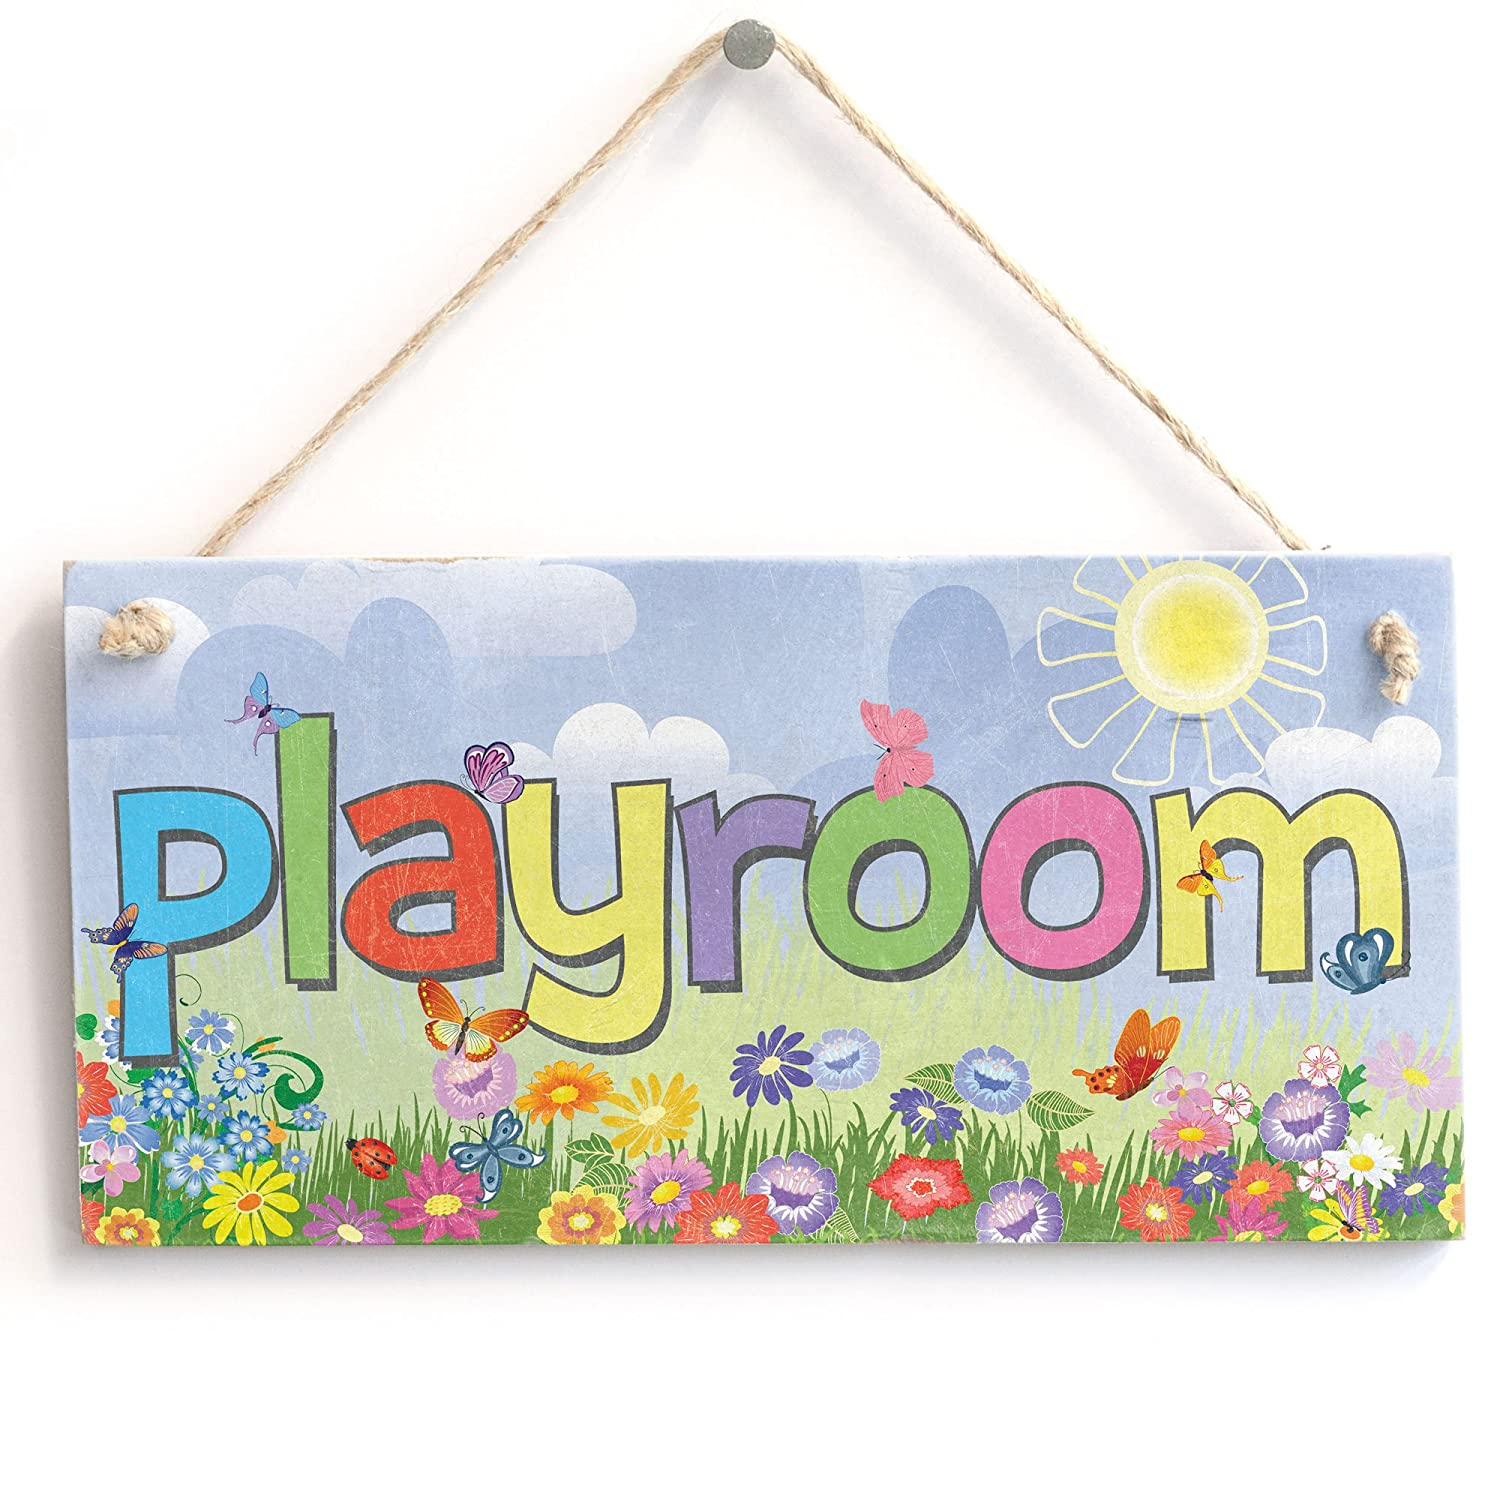 Playroom Childrens room chalkboard effect sign shabby vintage chic plaque signs